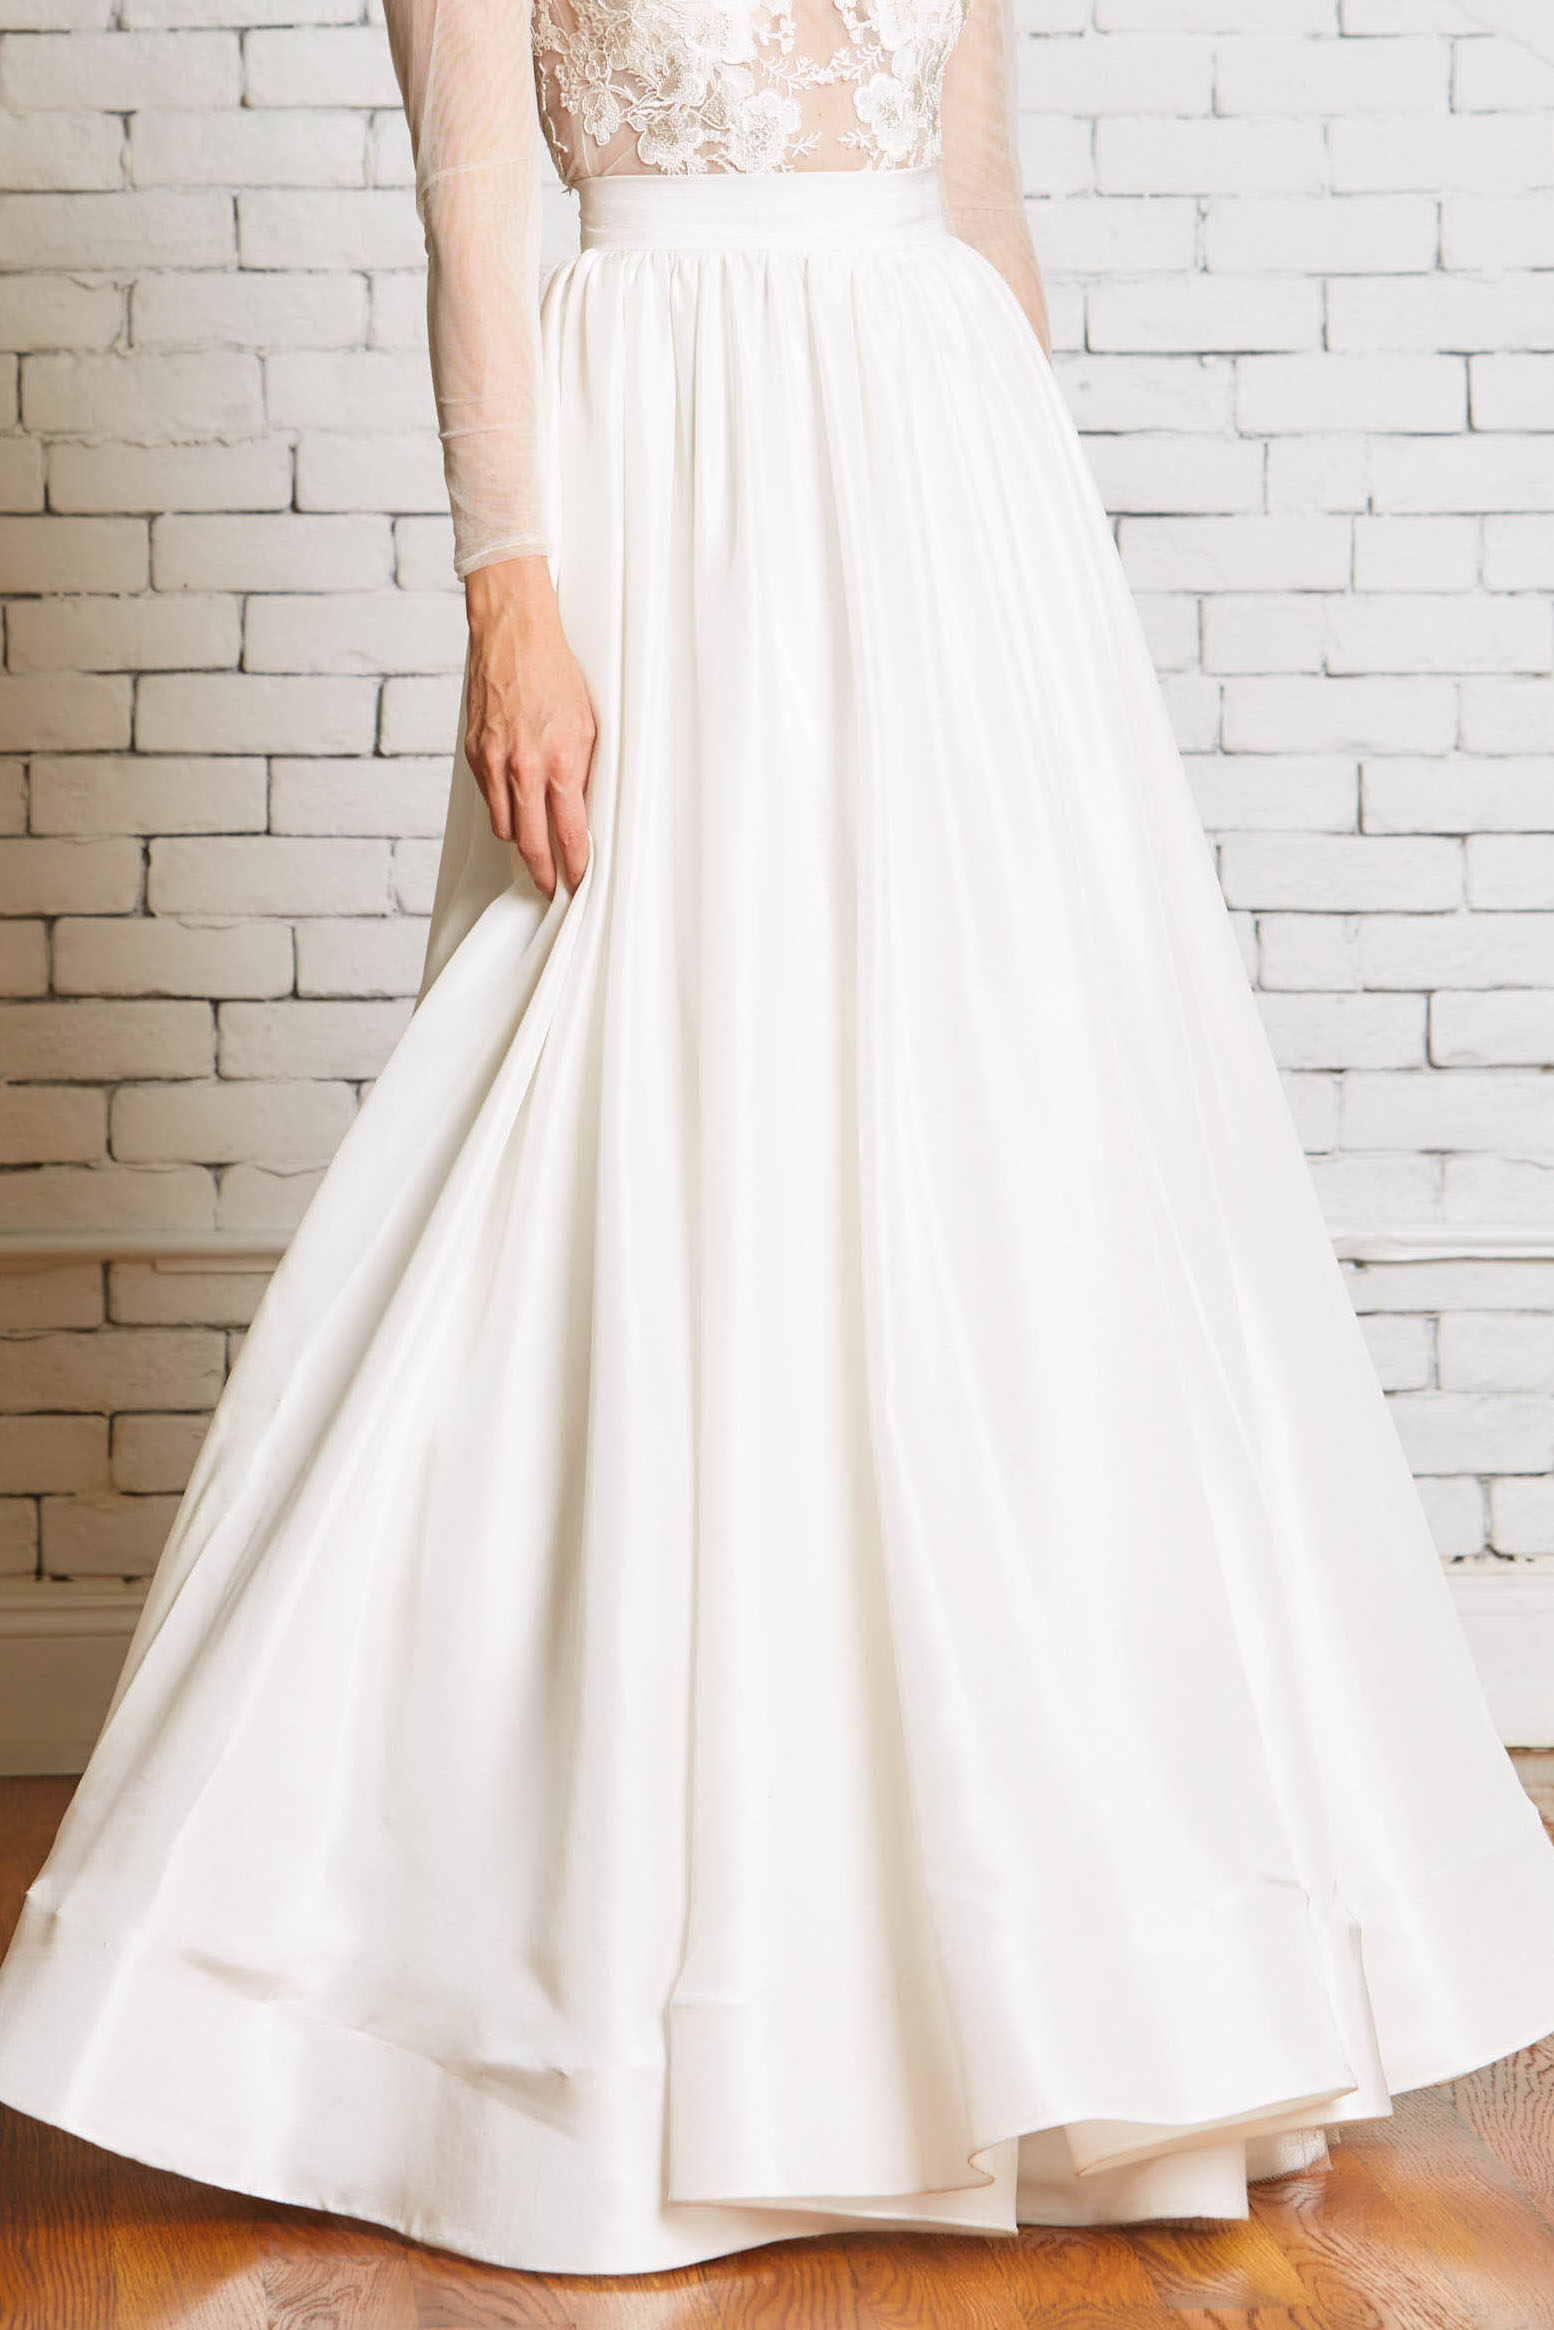 13a.Rebecca_Schoneveld_Olivia_Skirt-Front-Ballgown_Skirt_with_Pockets_Drama.jpg